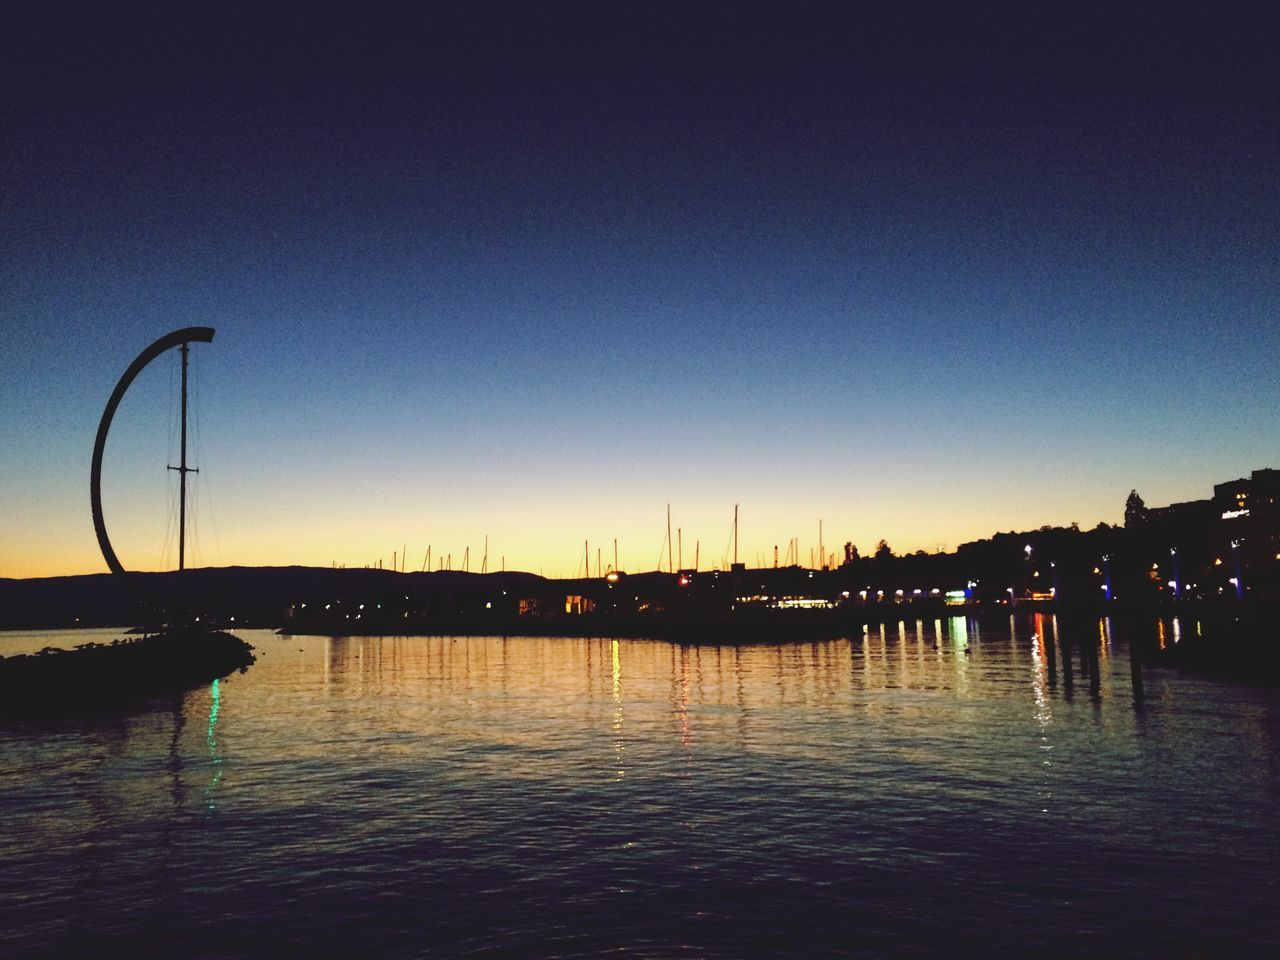 water, nautical vessel, waterfront, reflection, nature, sunset, outdoors, transportation, silhouette, clear sky, sea, moored, no people, sky, mast, sailboat, beauty in nature, scenics, architecture, yacht, day